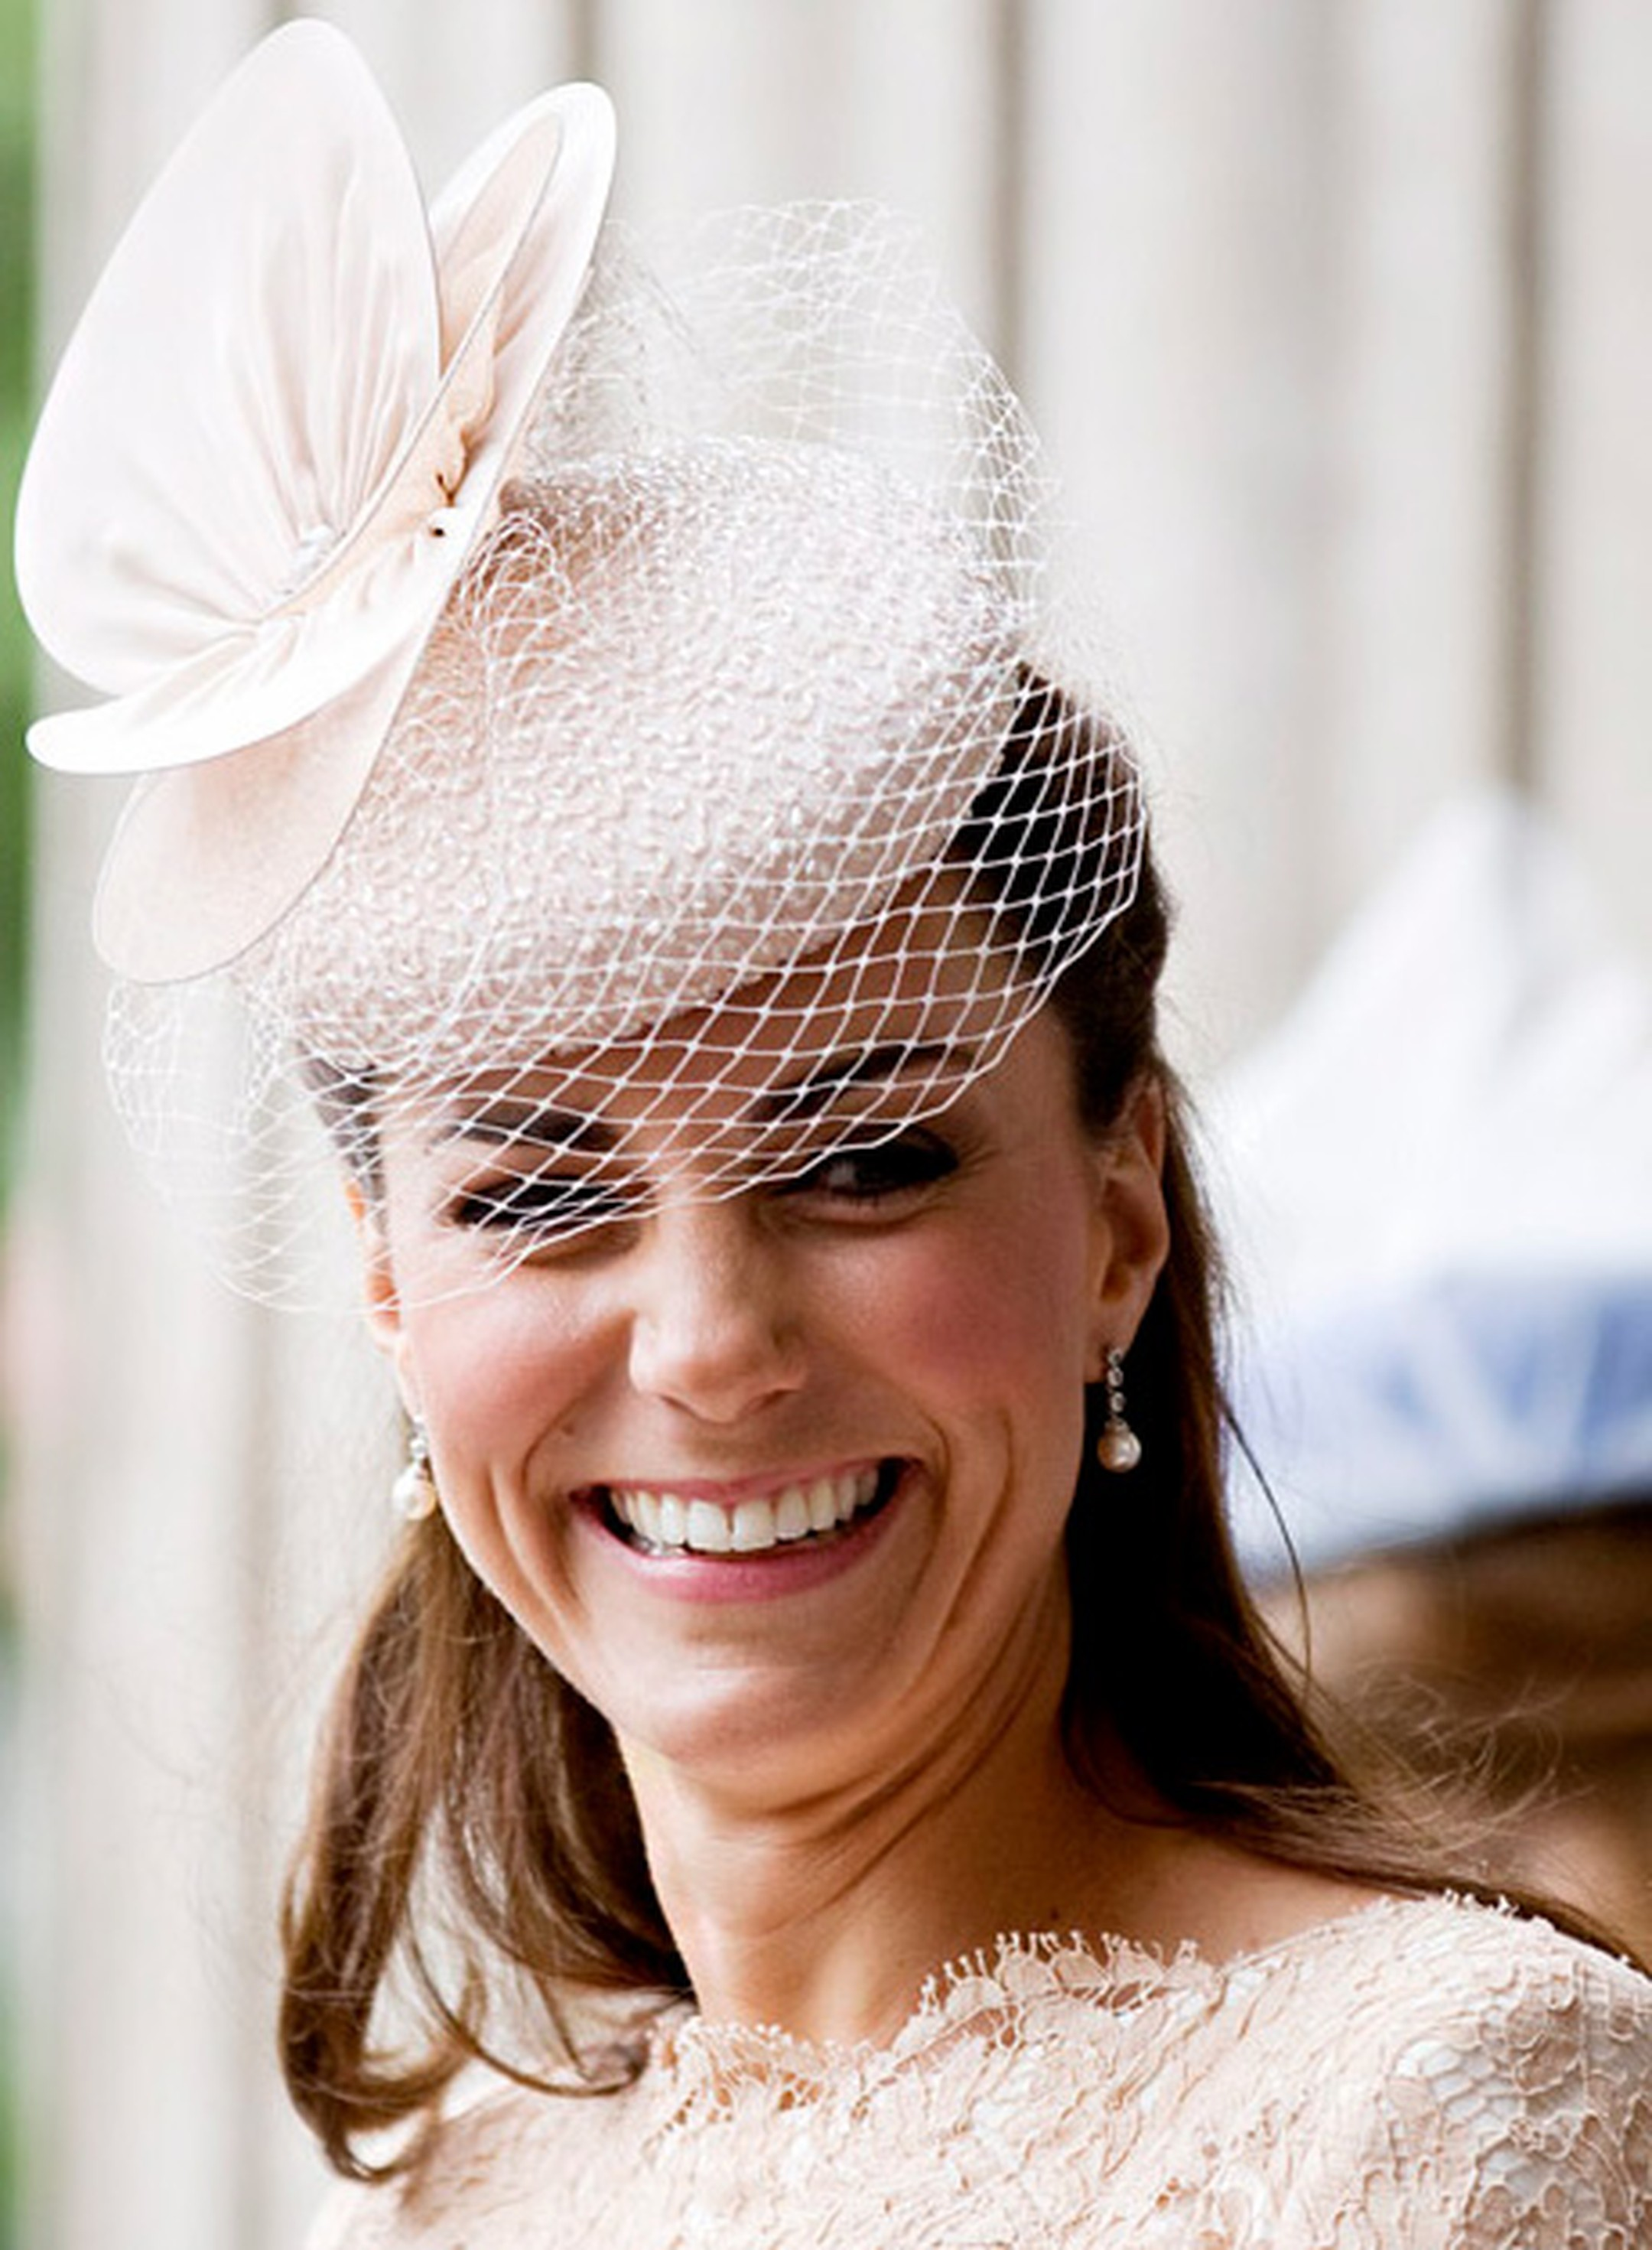 kate-middleton-fake-diamond-earrings.jpg